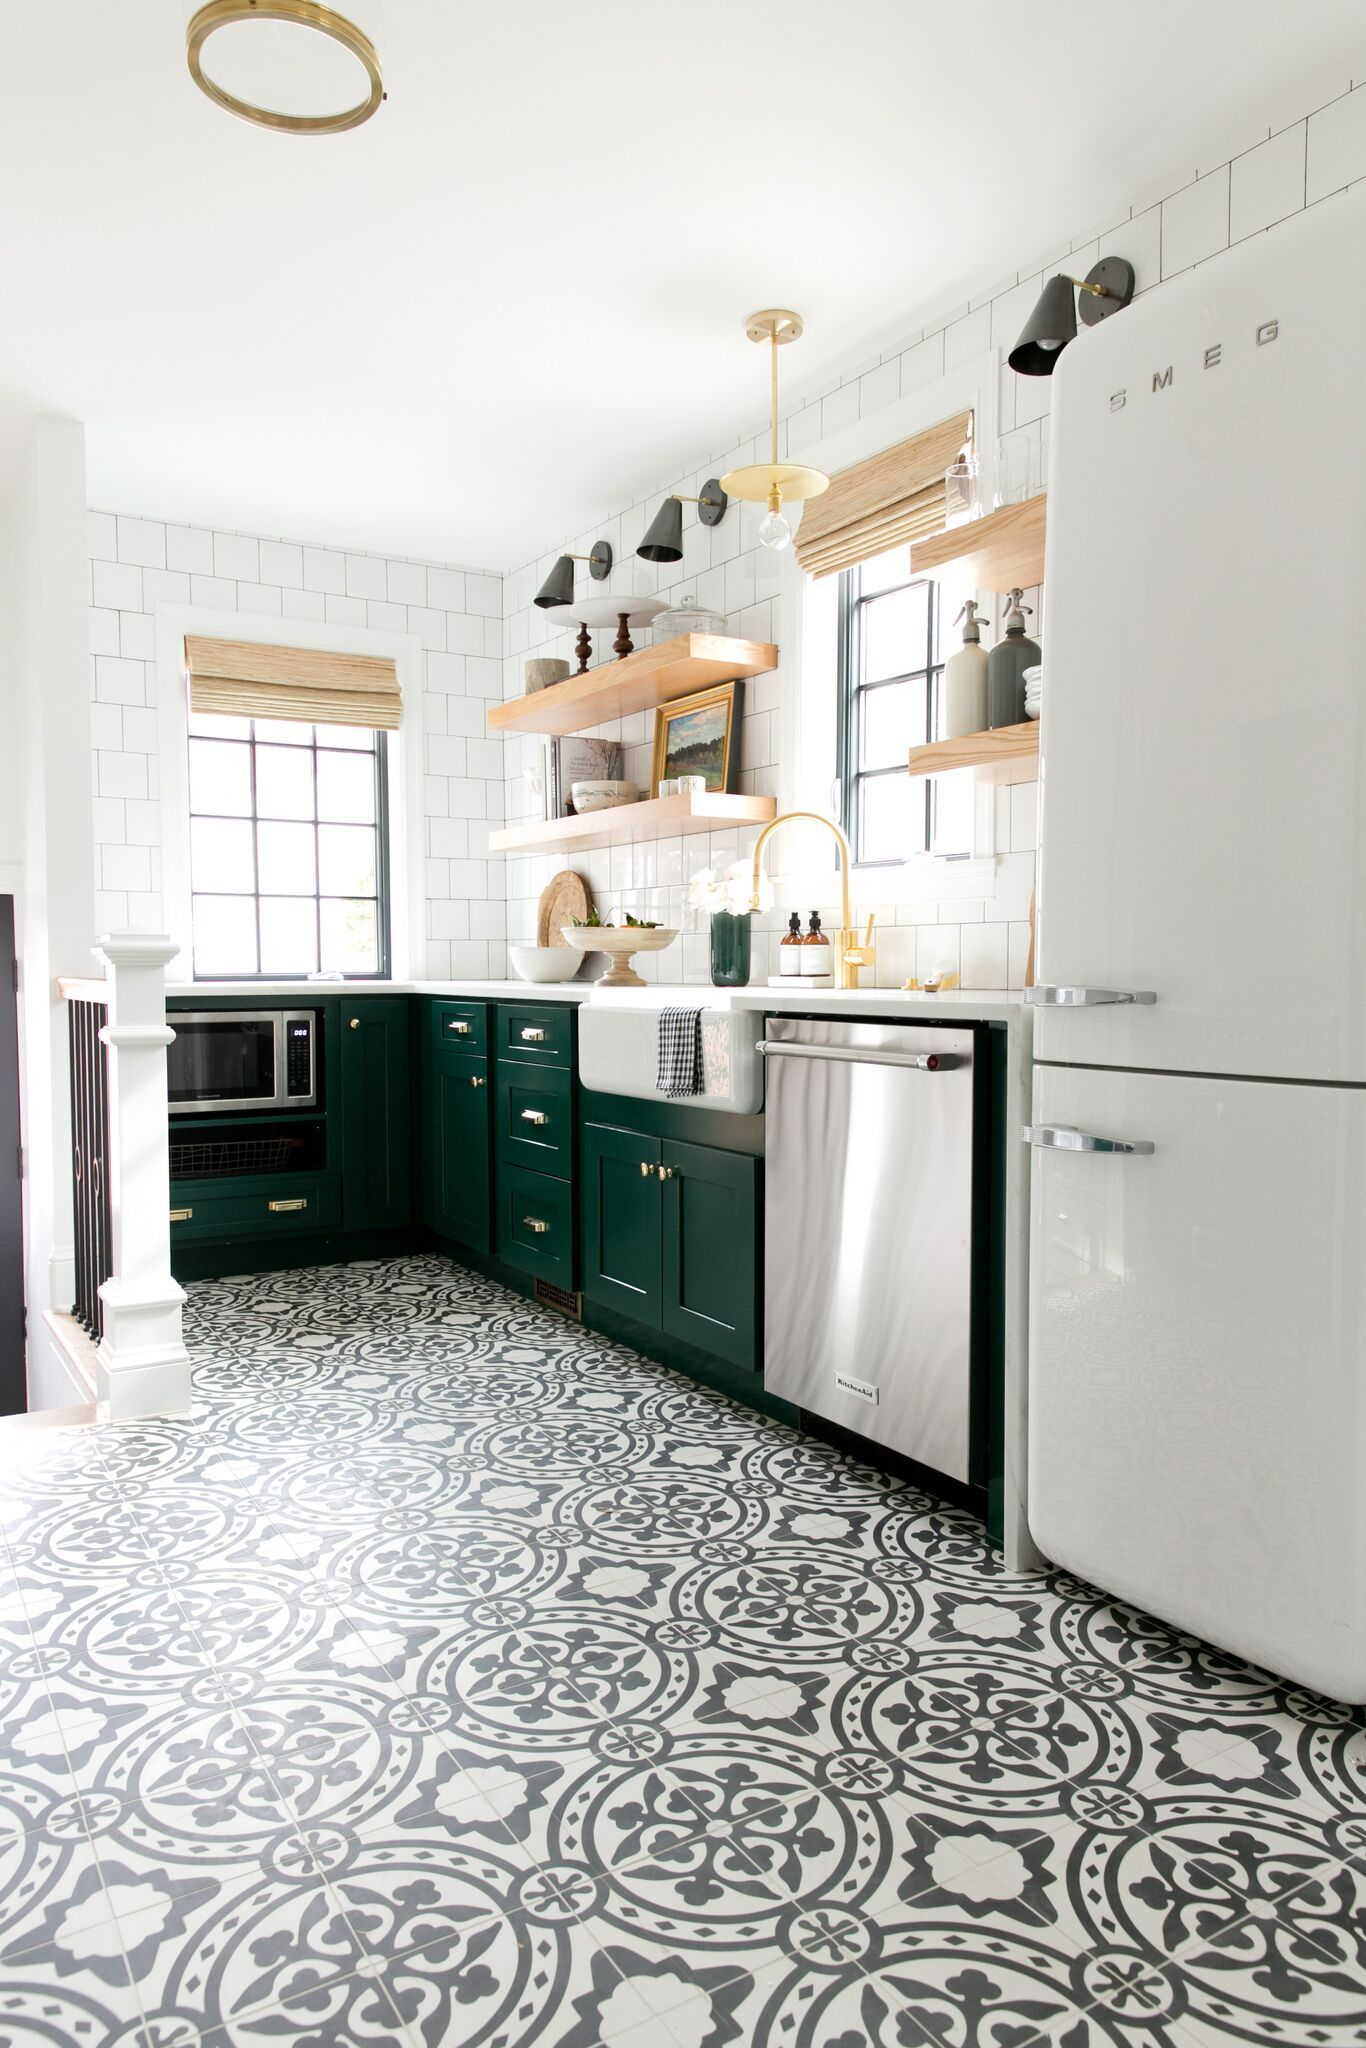 Patterned Tiled Floors And Green Cabinets Denver Tudor Project Studio Mcgee